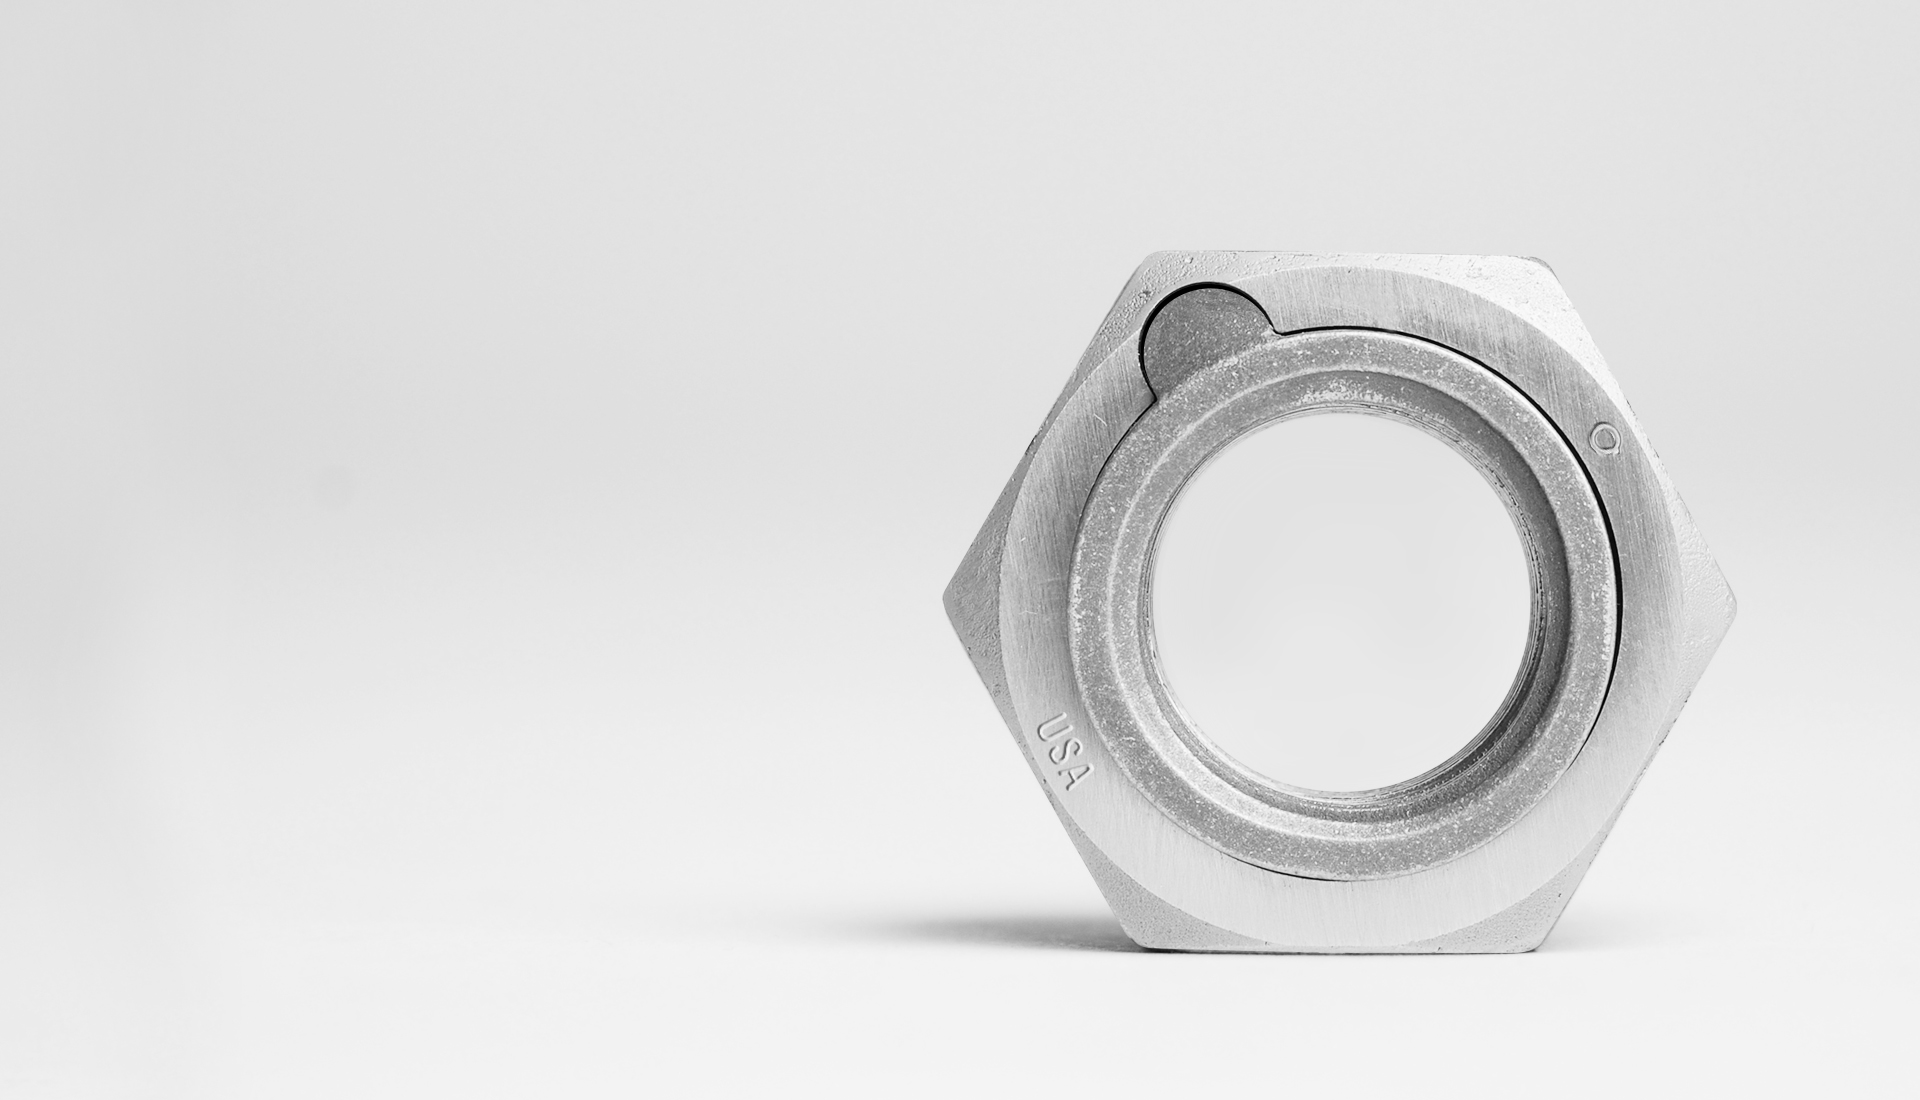 The original Security Locknut. Made in the USA.